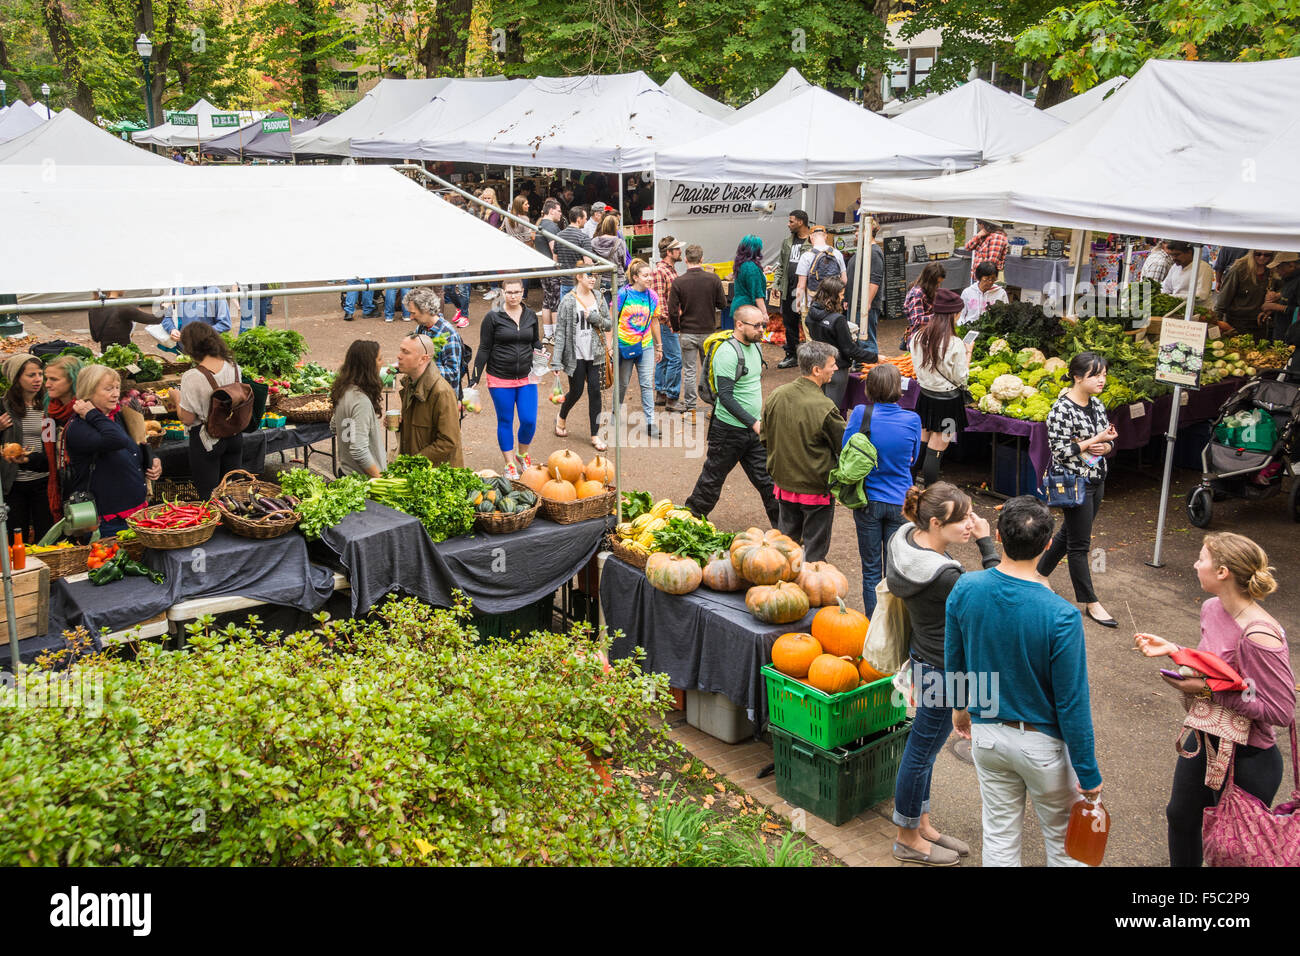 Farmer 39 s market on the park blocks at portland state - Market place at garden state park ...